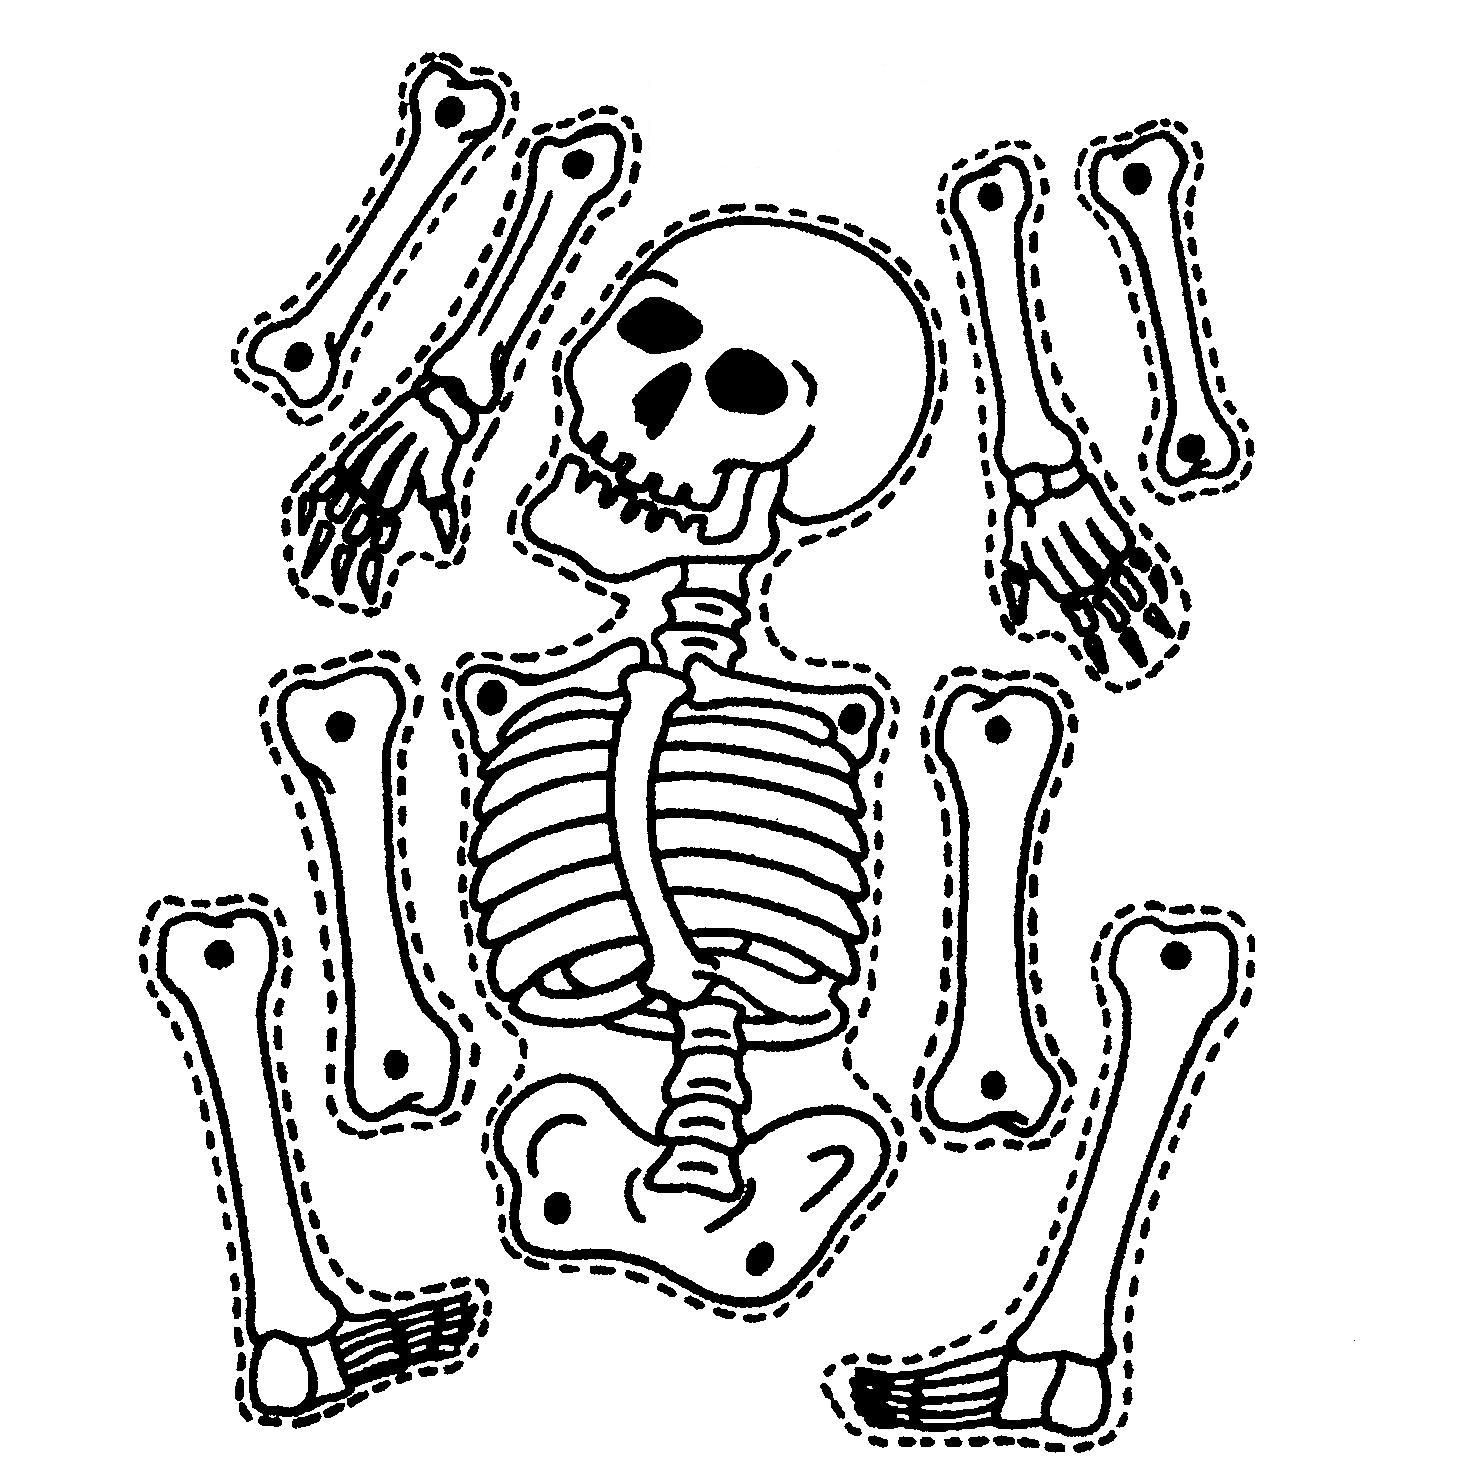 graphic relating to Printable Skeleton Parts identify 9 Printable Skeleton Crafts Math Halloween prints